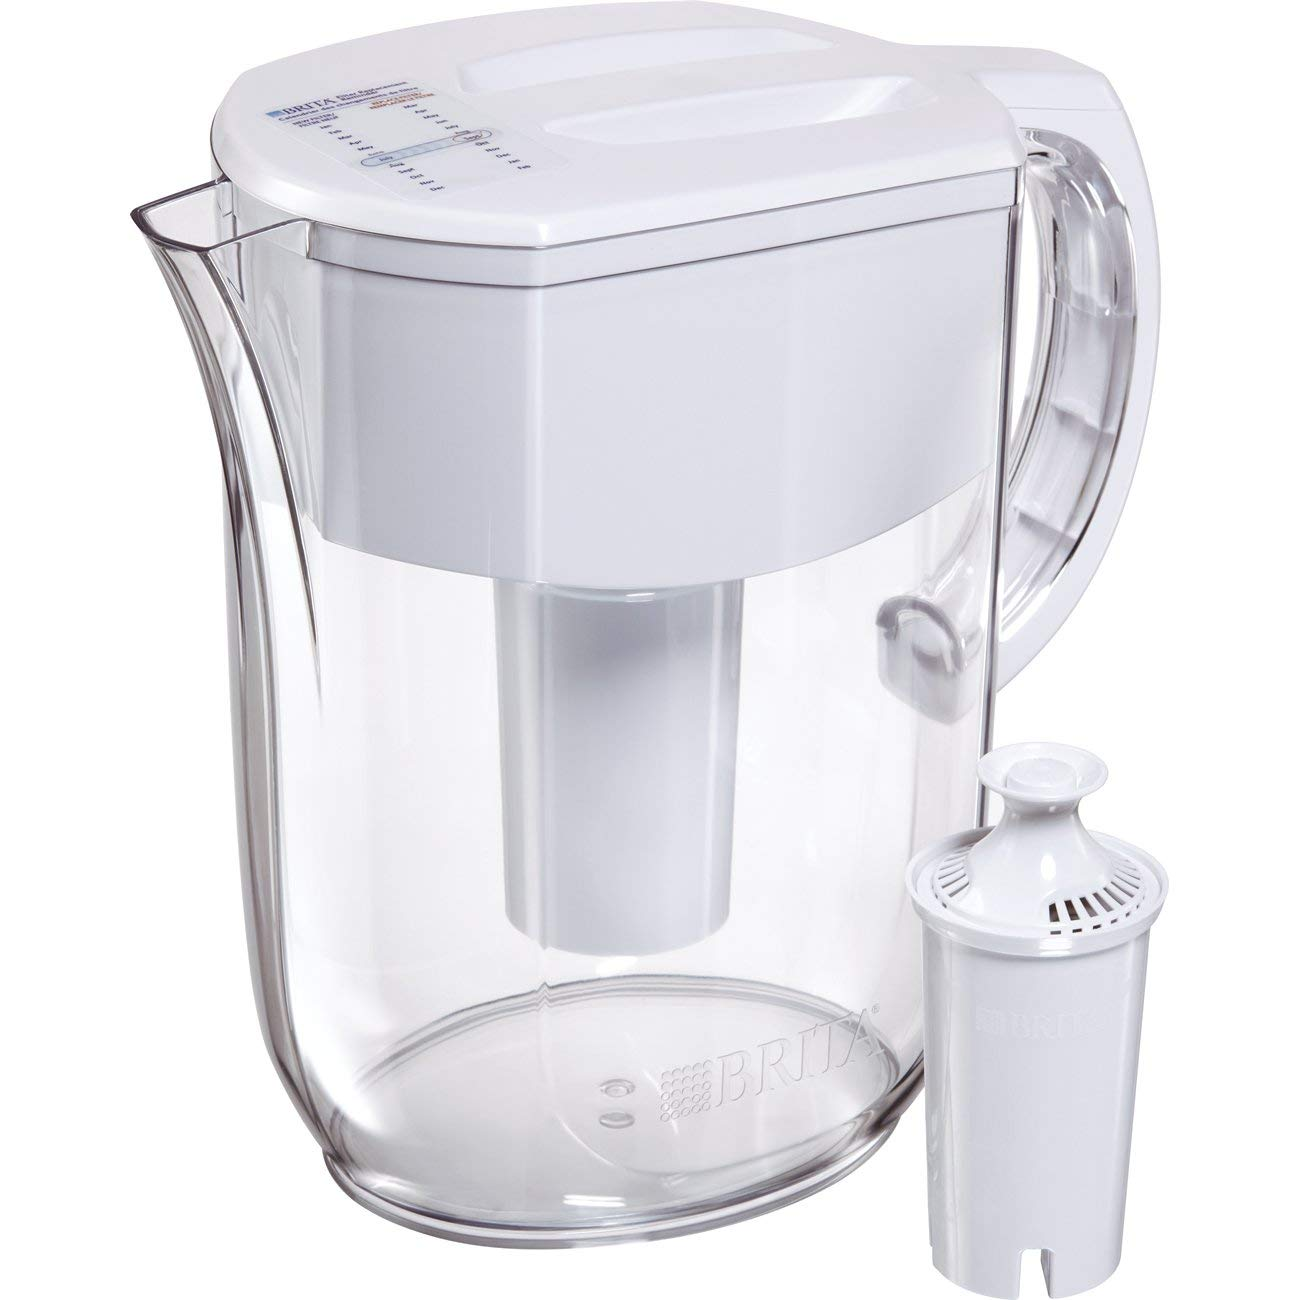 Amazoncom Brita Large 10 Cup Everyday Water Pitcher With Filter